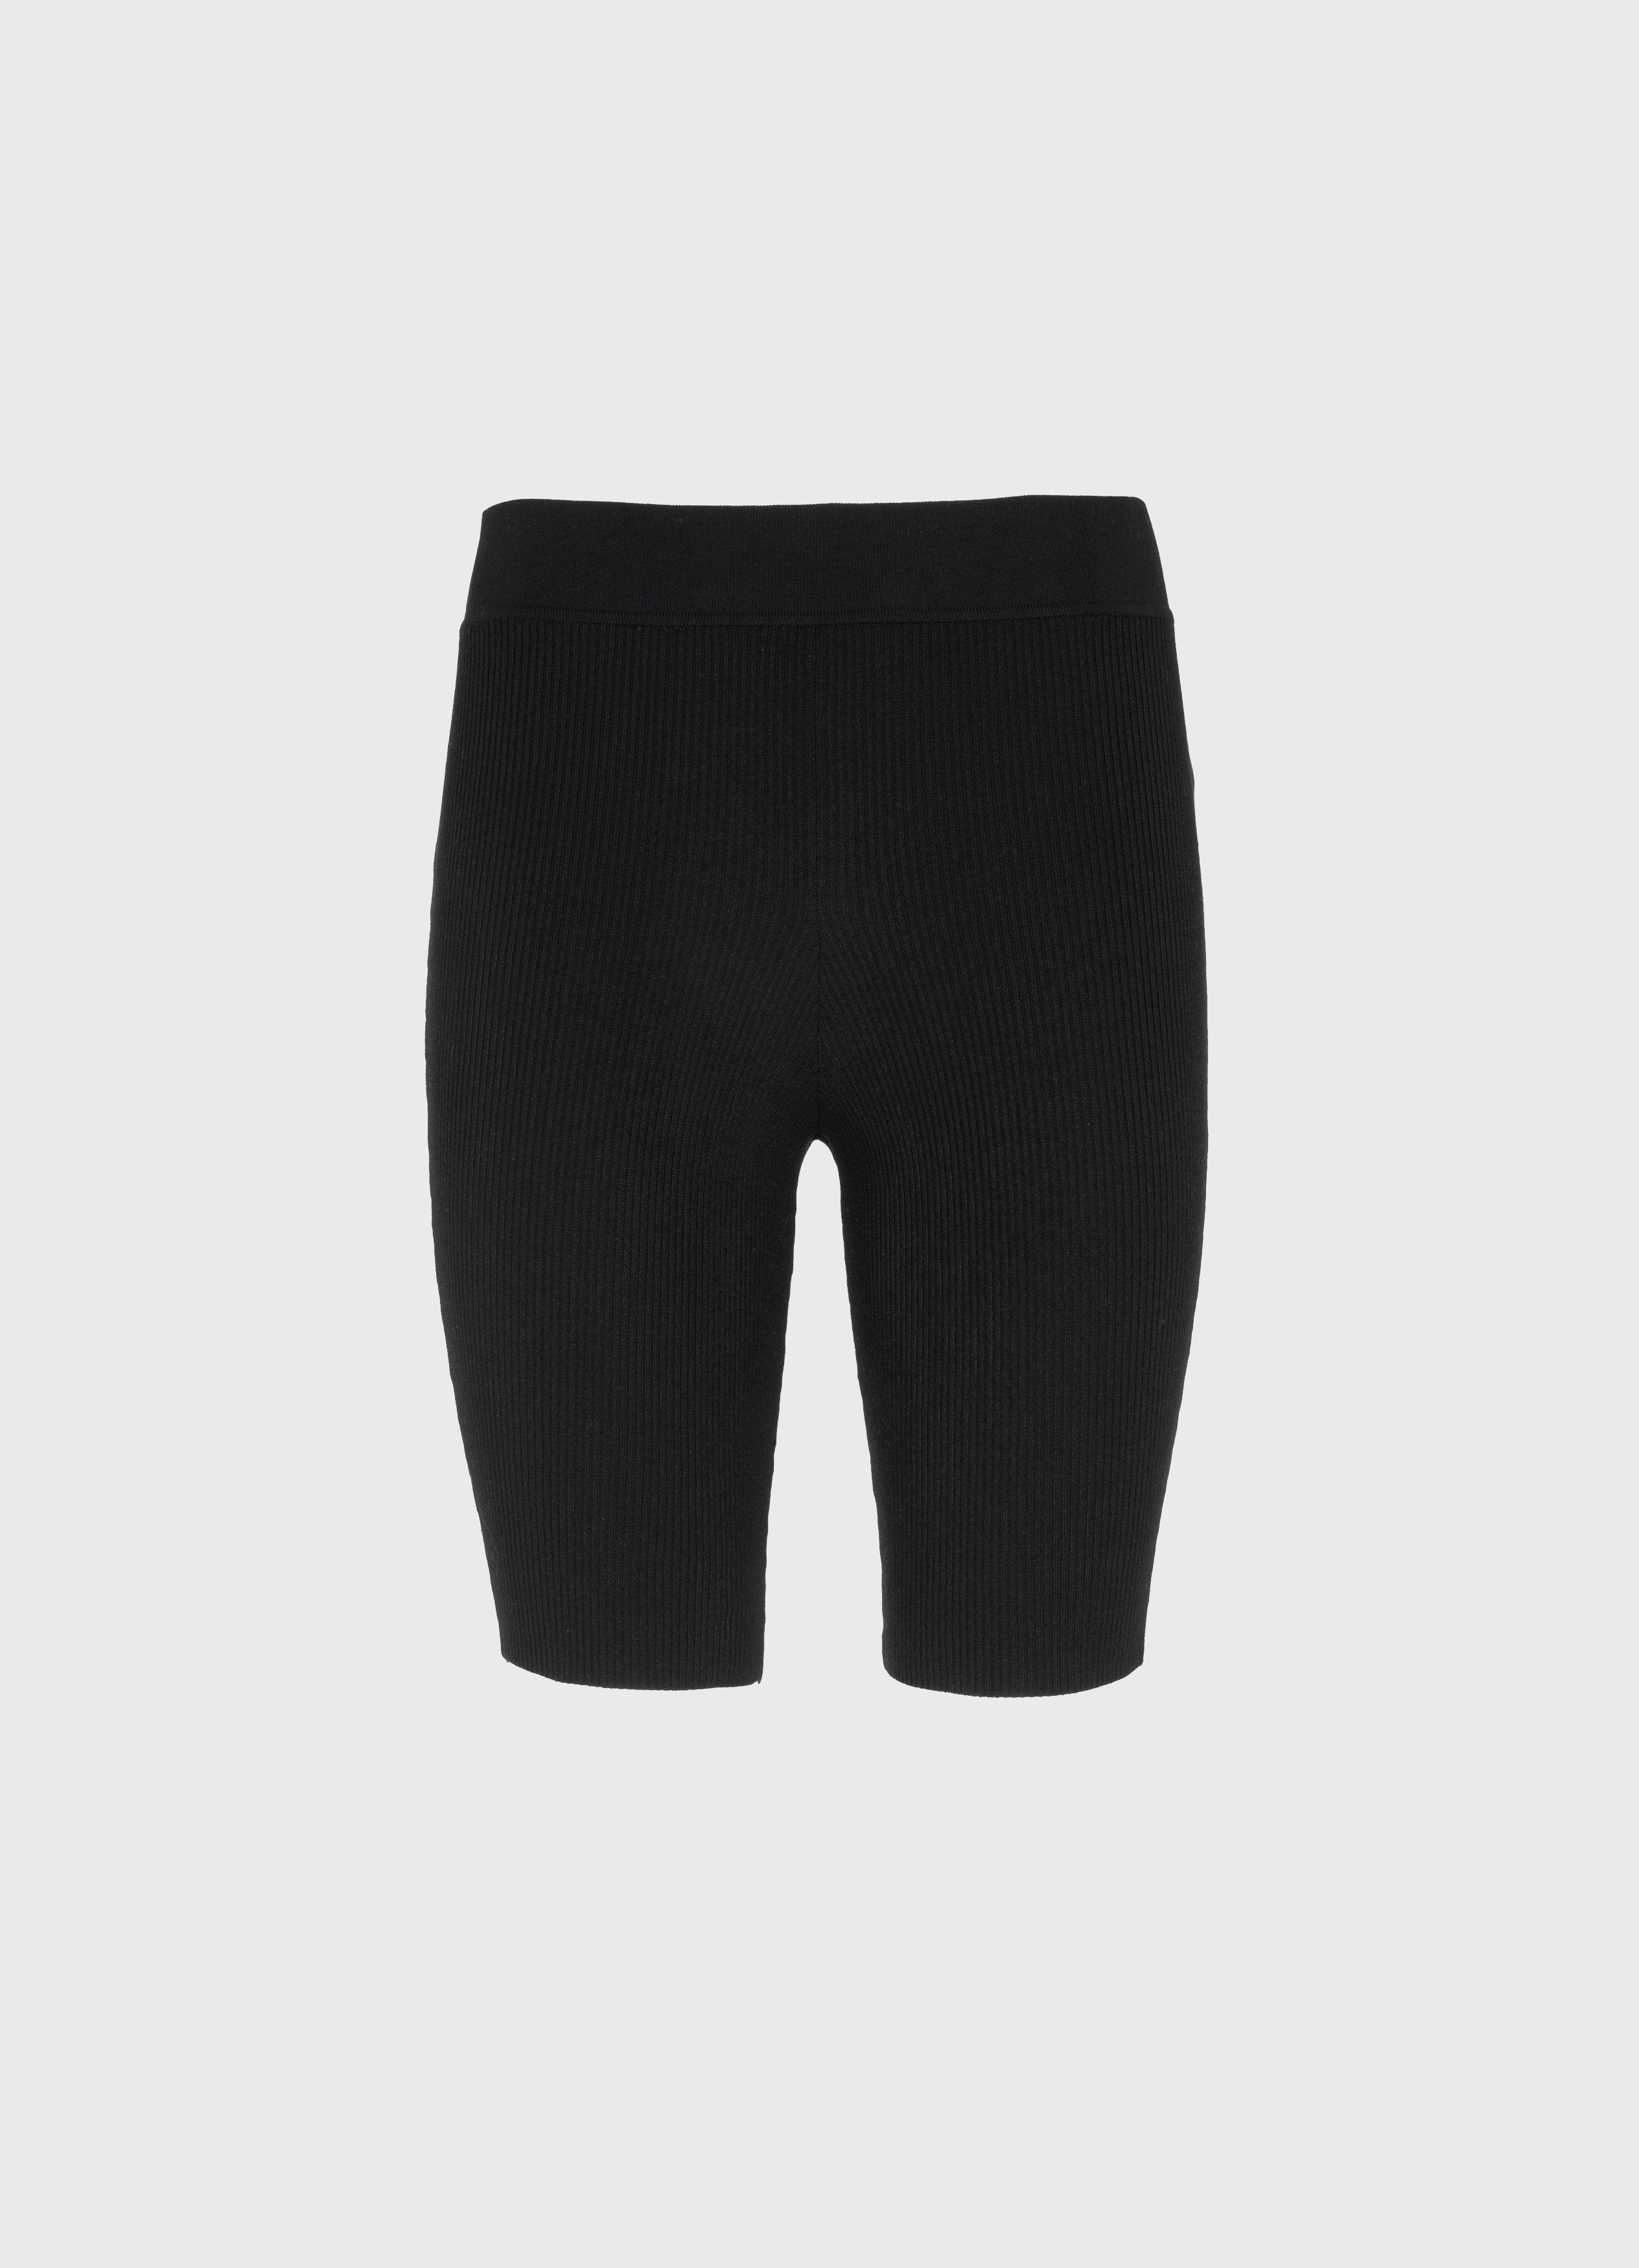 ARBIA SILK CYCLING SHORTS